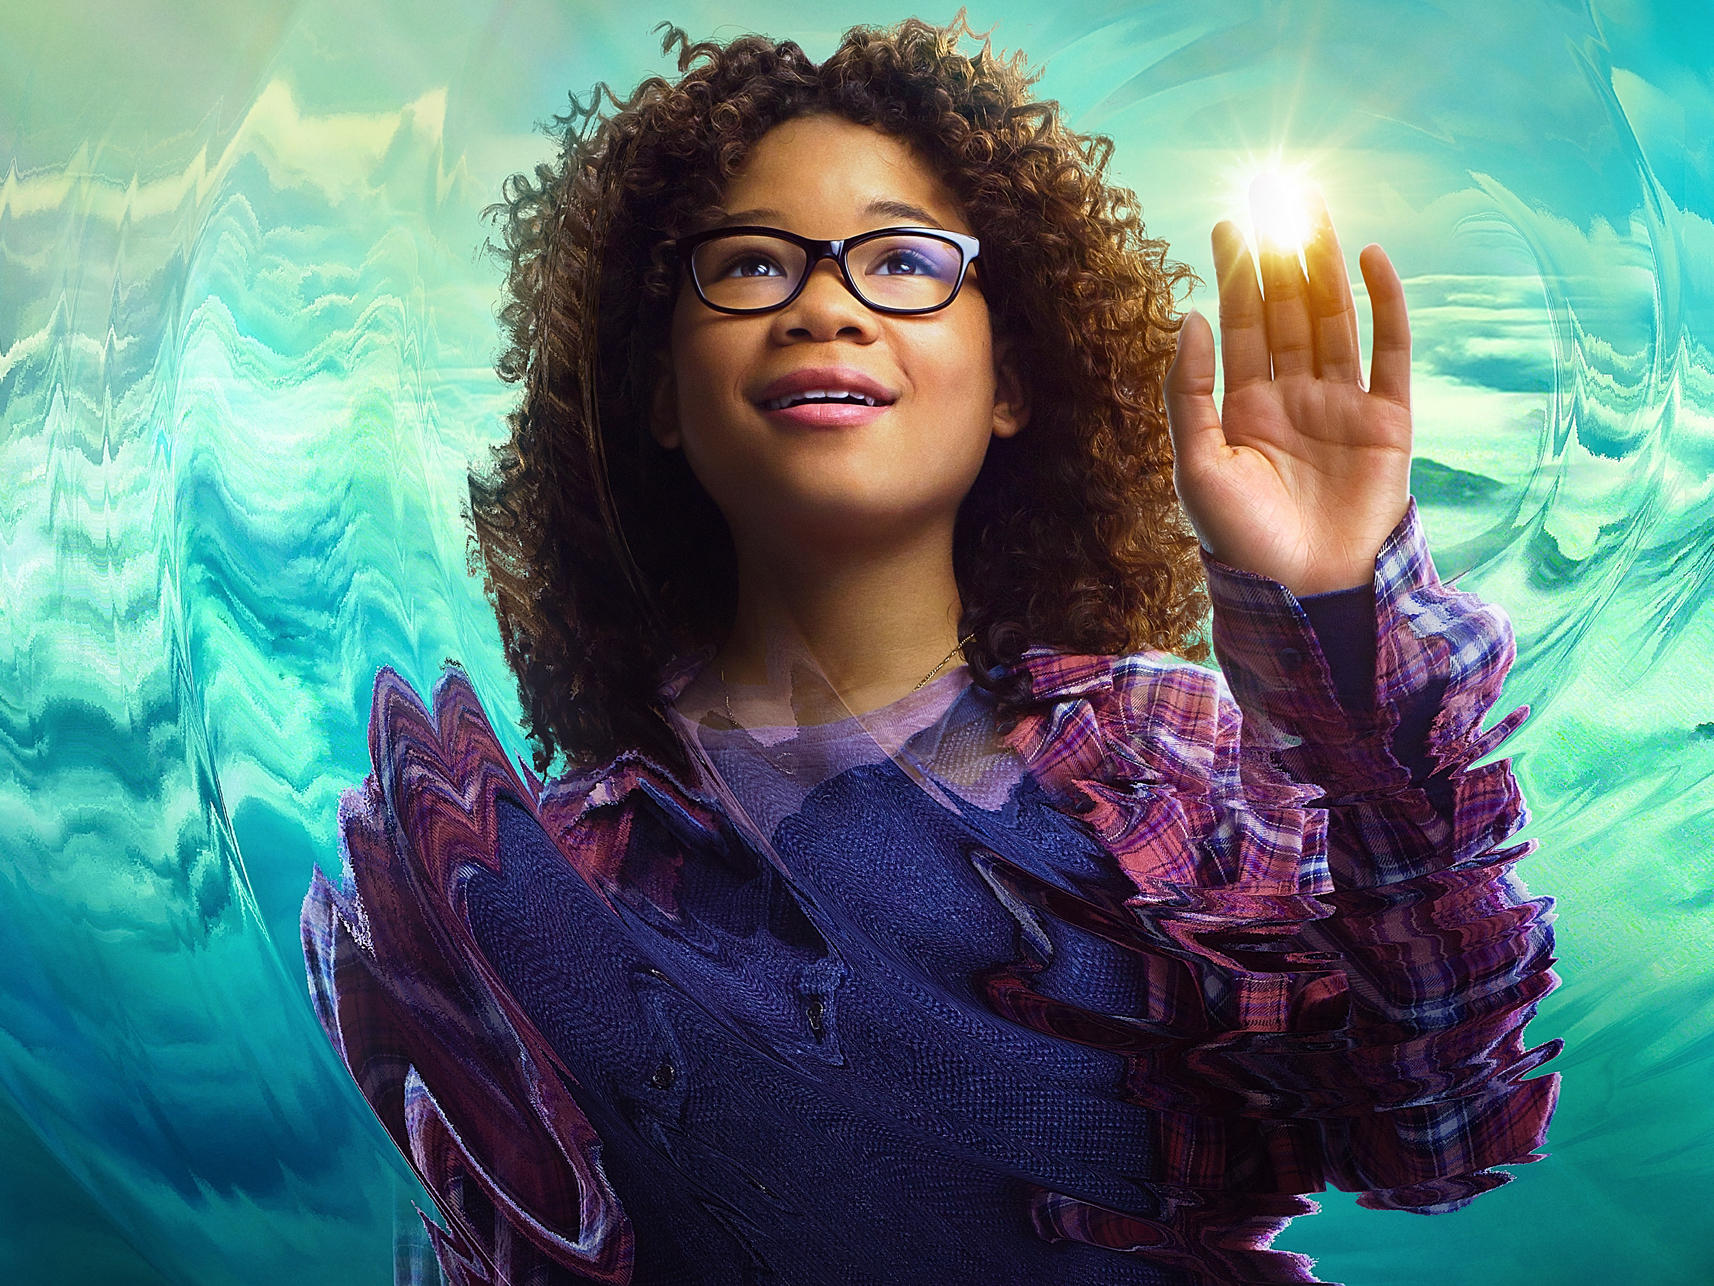 'A Wrinkle in Time', made for the child in you